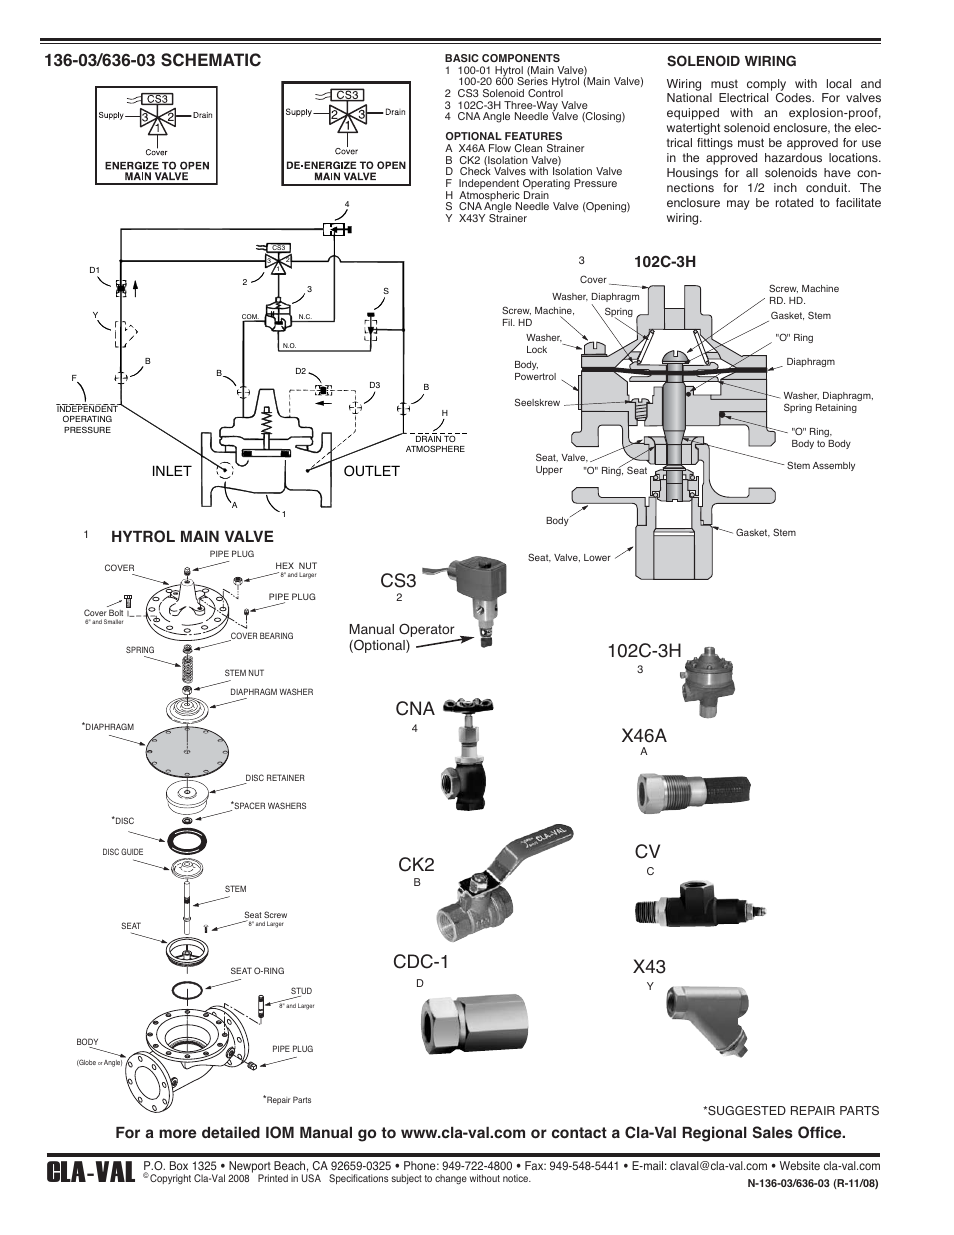 cla val 136 03_636 03 valve quick manual page2 tir3 wiring diagram dominator wiring diagram wiring diagram ~ odicis whelen tir3 wiring diagram at soozxer.org